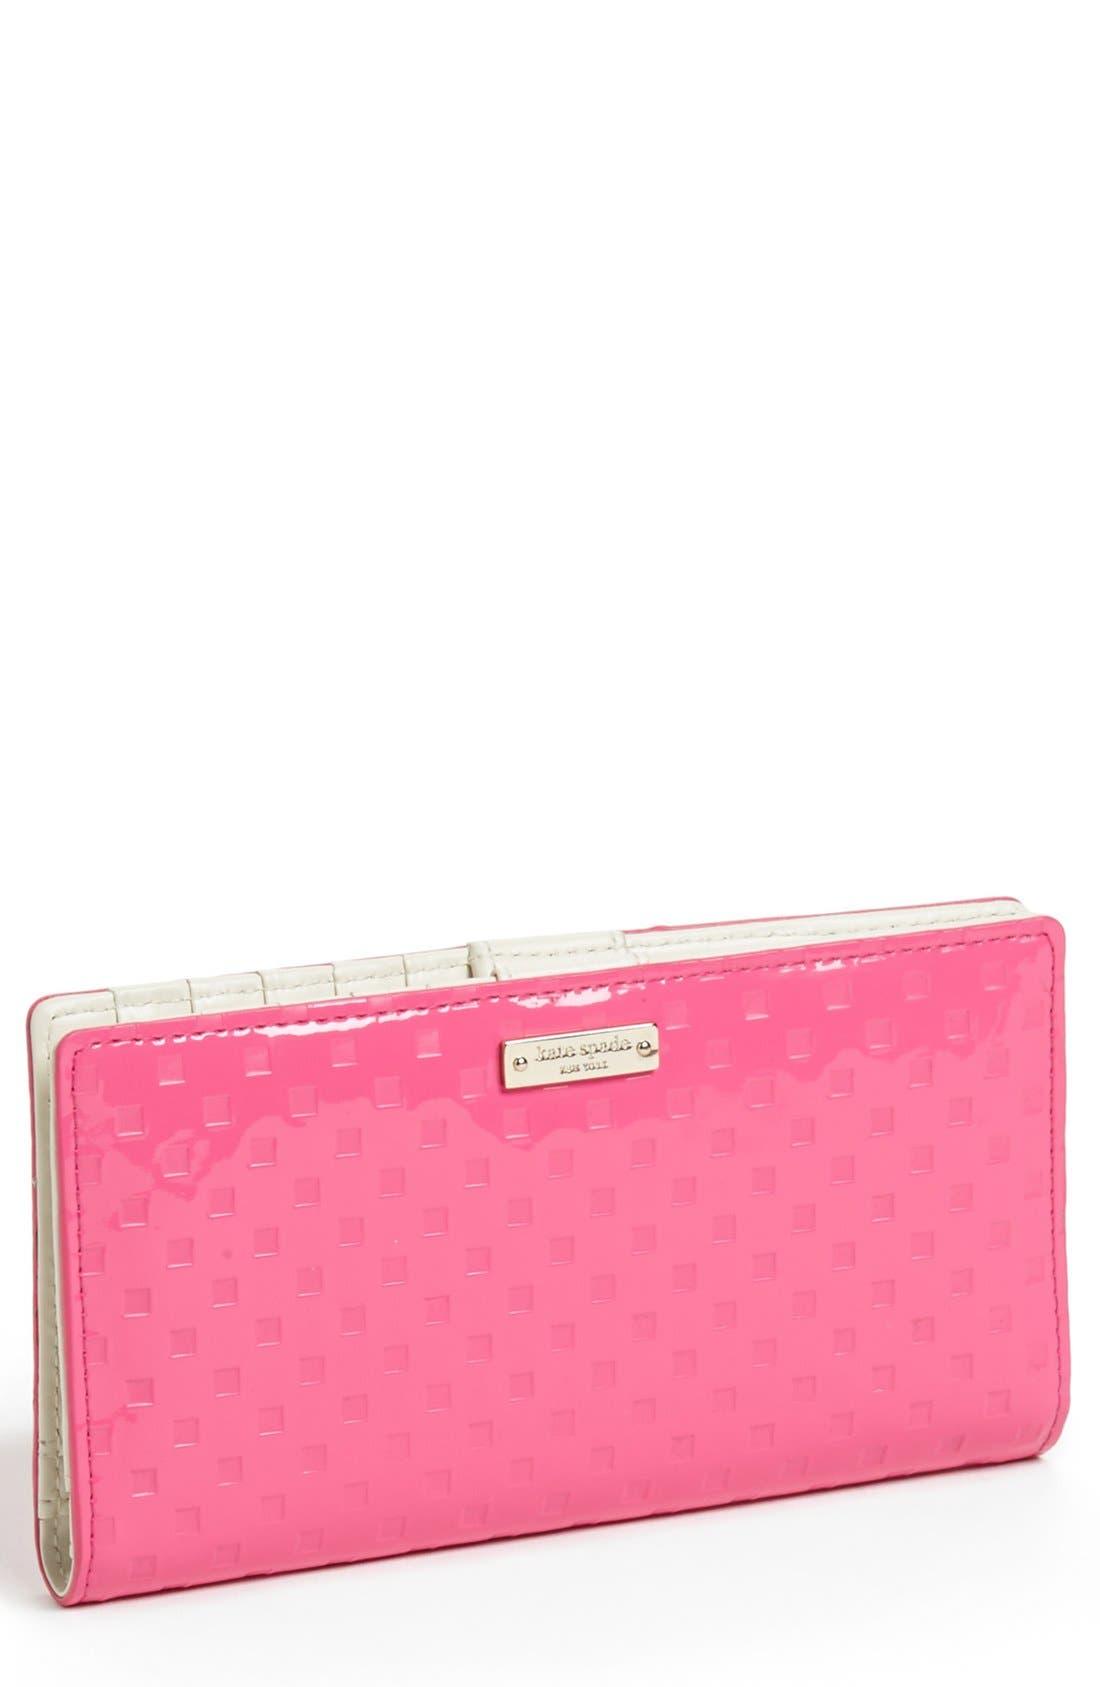 Main Image - kate spade new york 'jewel street - stacy' wallet